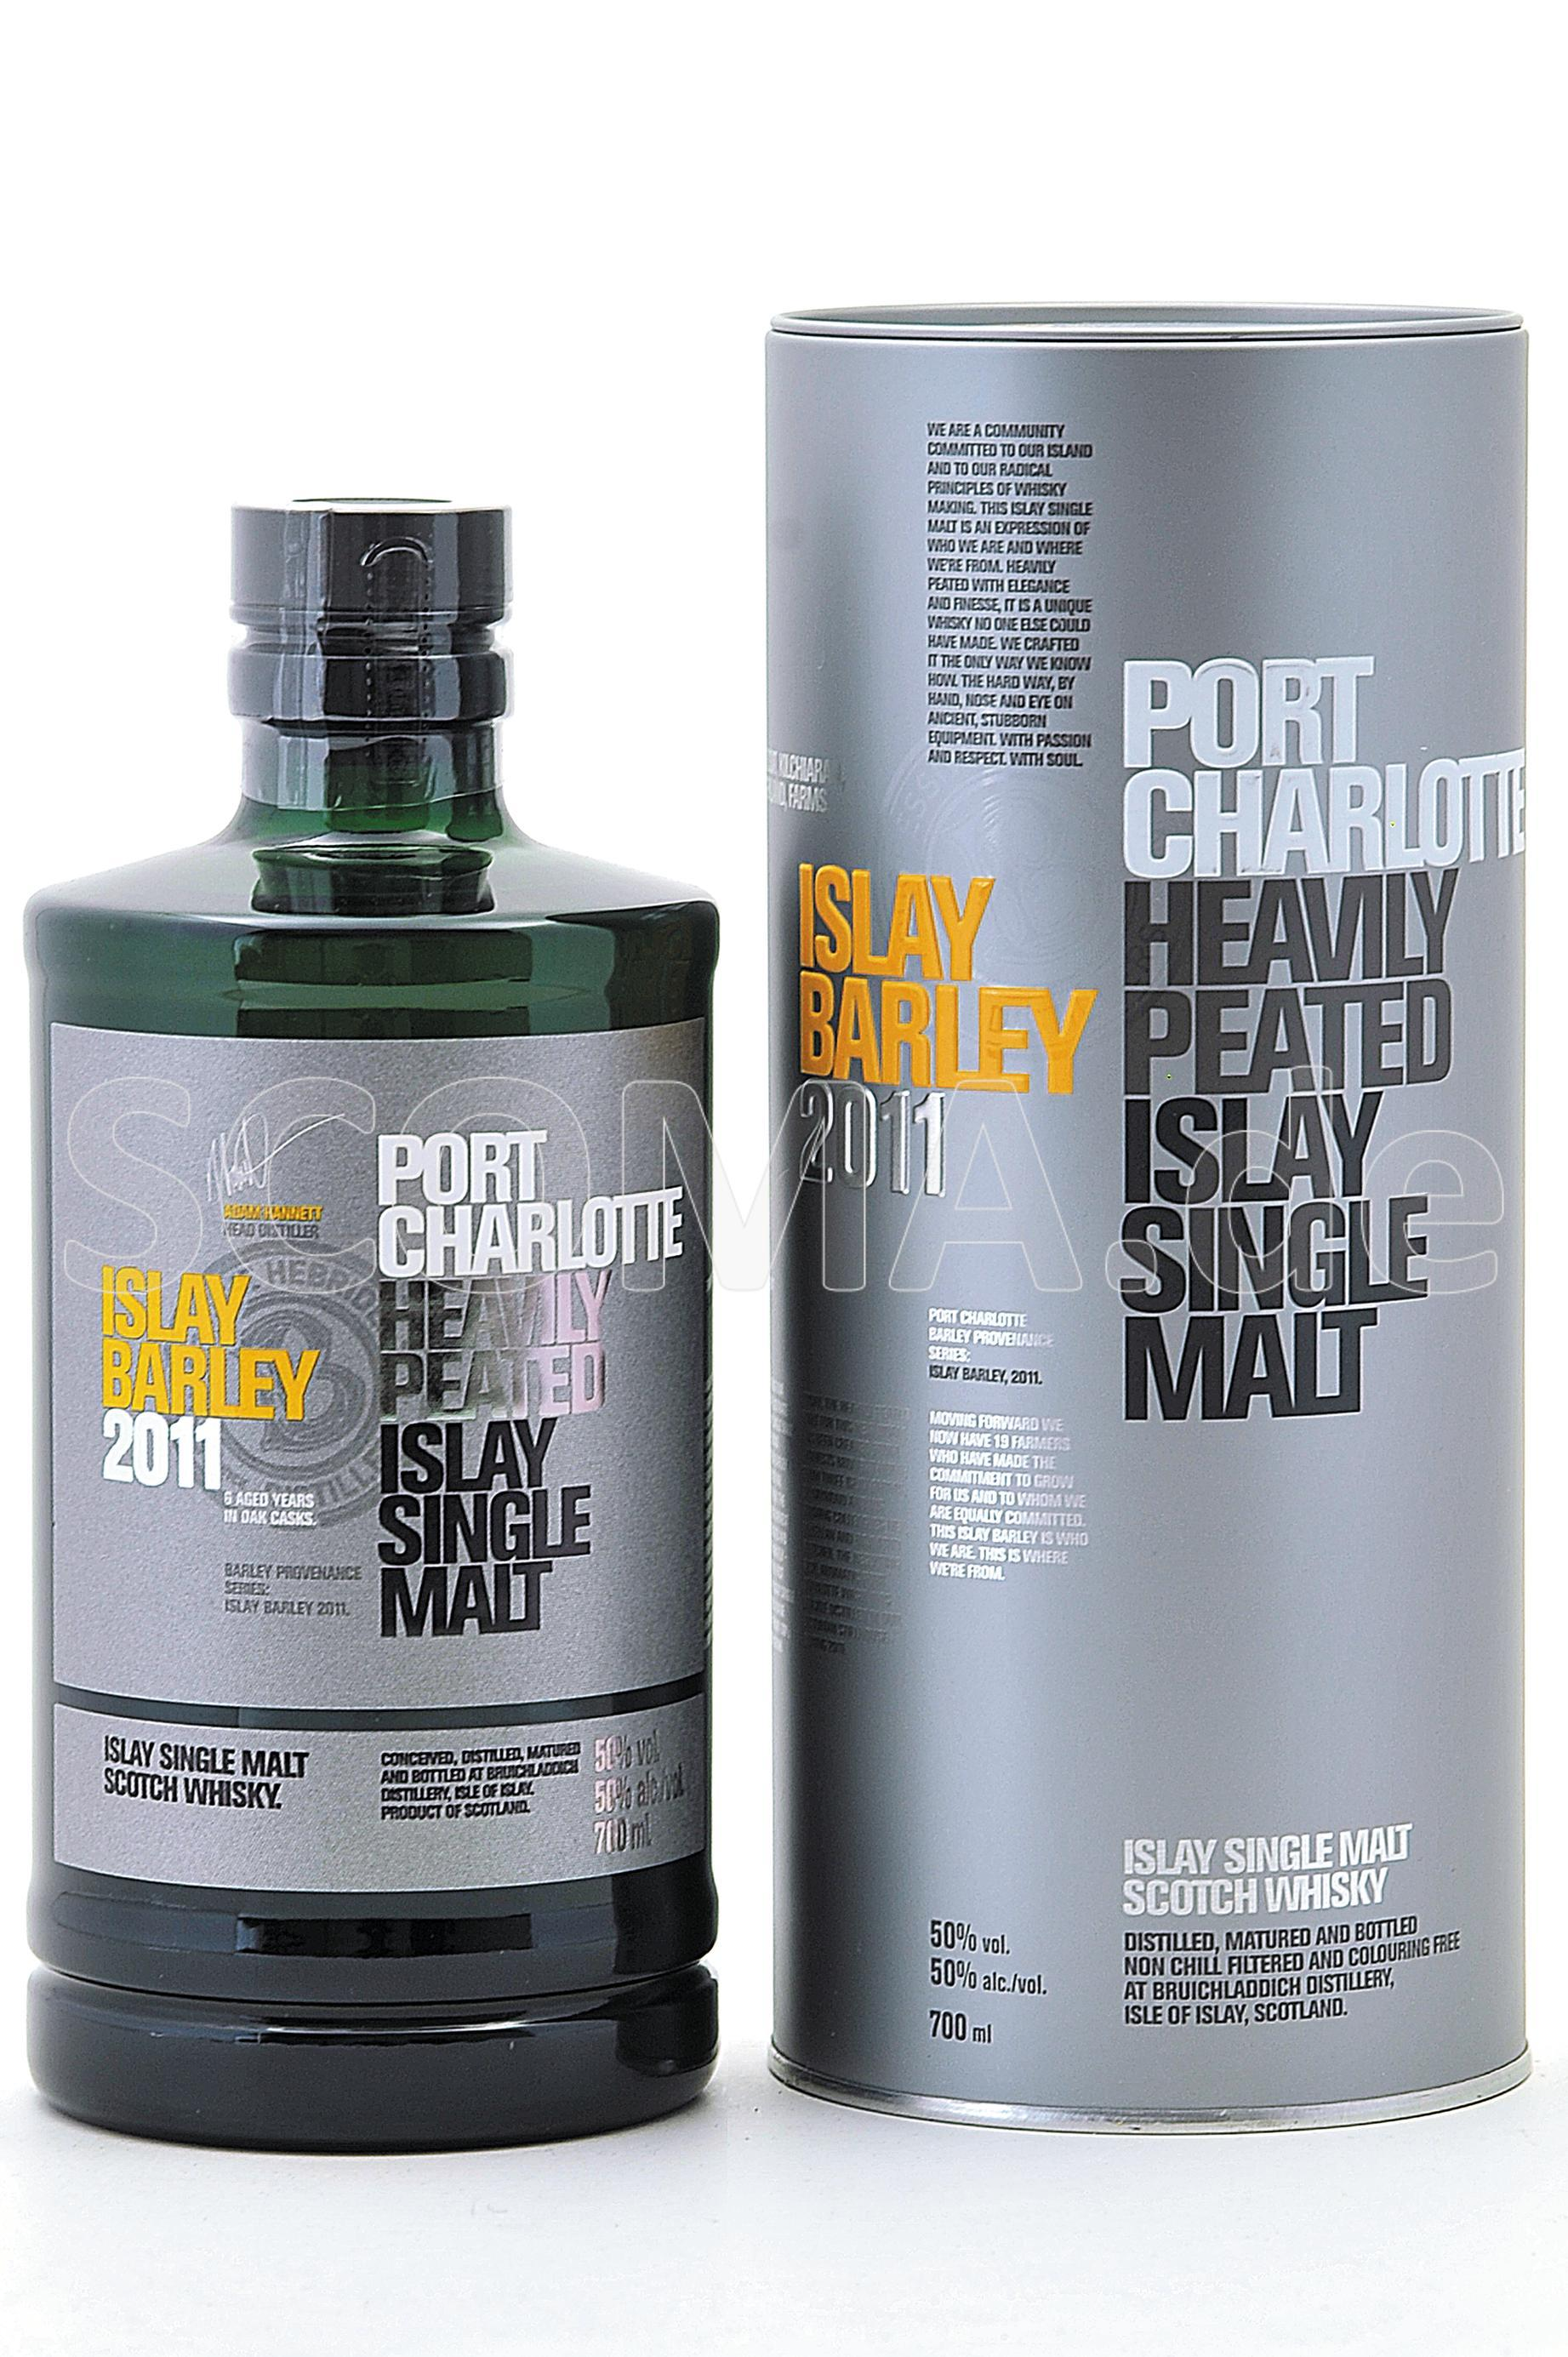 Port Charlotte Islay Barley 20...